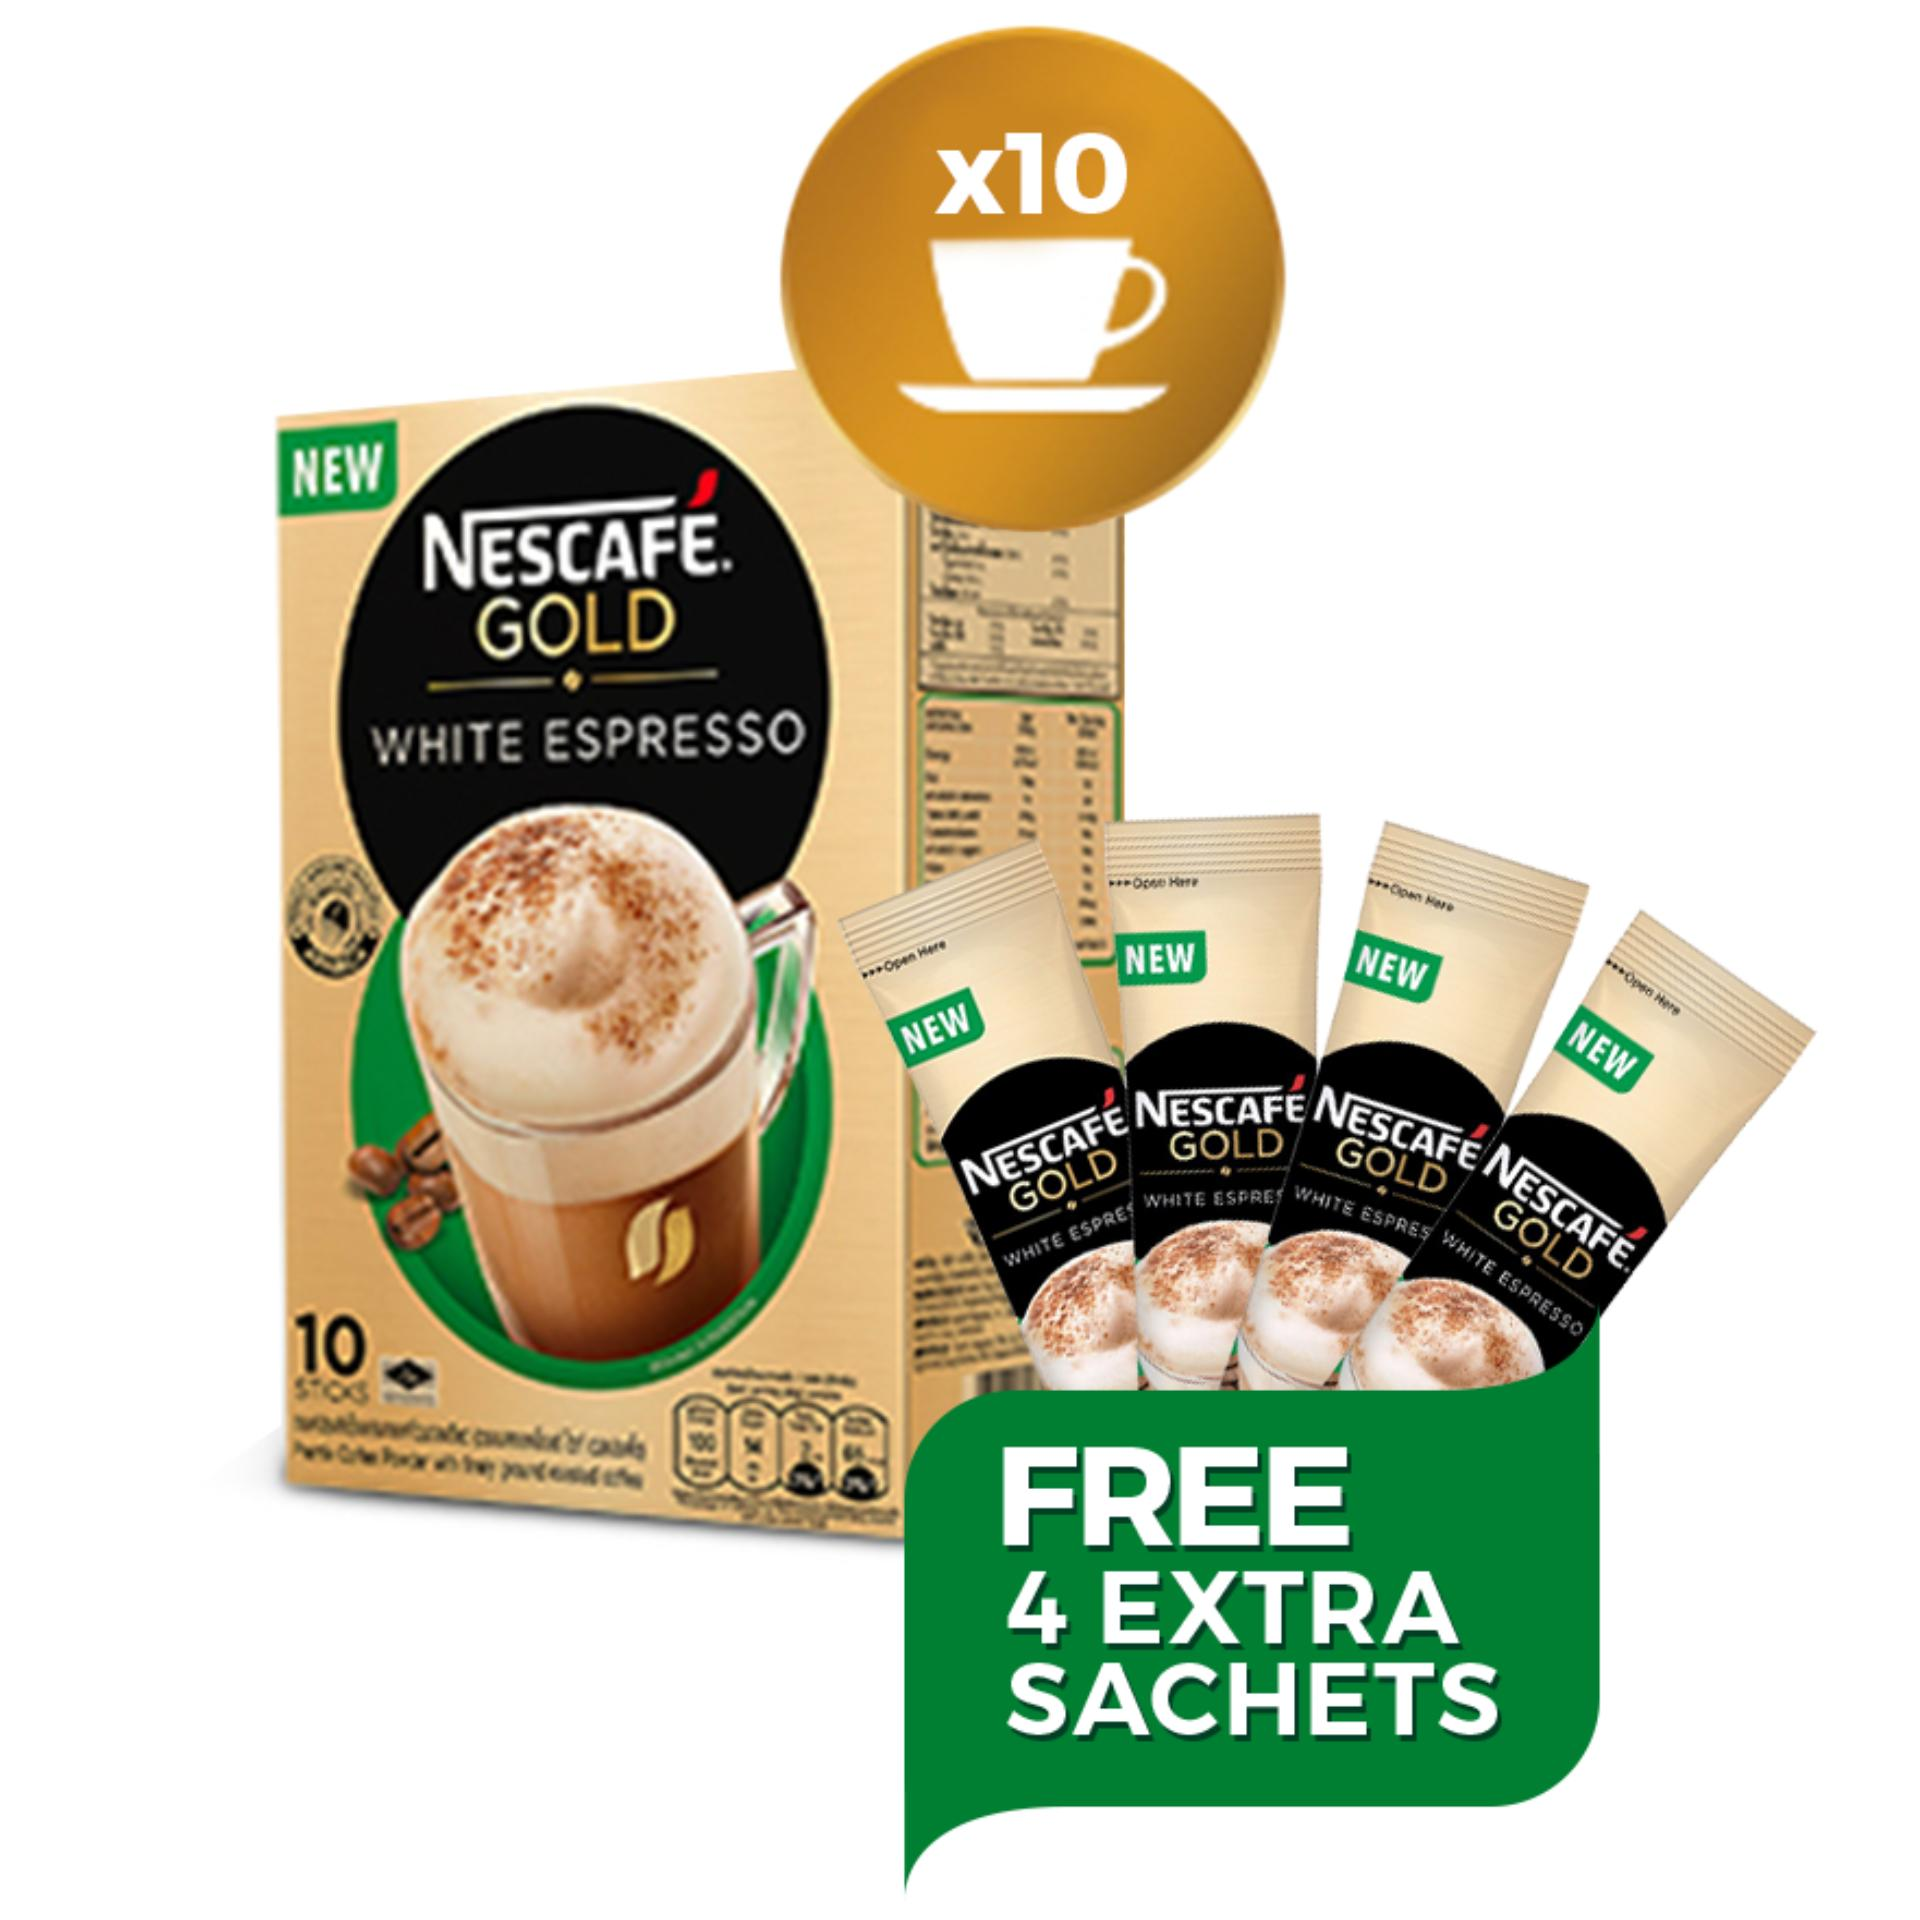 Coffee Brands Beans On Sale Prices Set Reviews In Luwak White Koffie Original 20 Pcs Nescafe Gold Espresso 25g 10 Sticks 4 Free